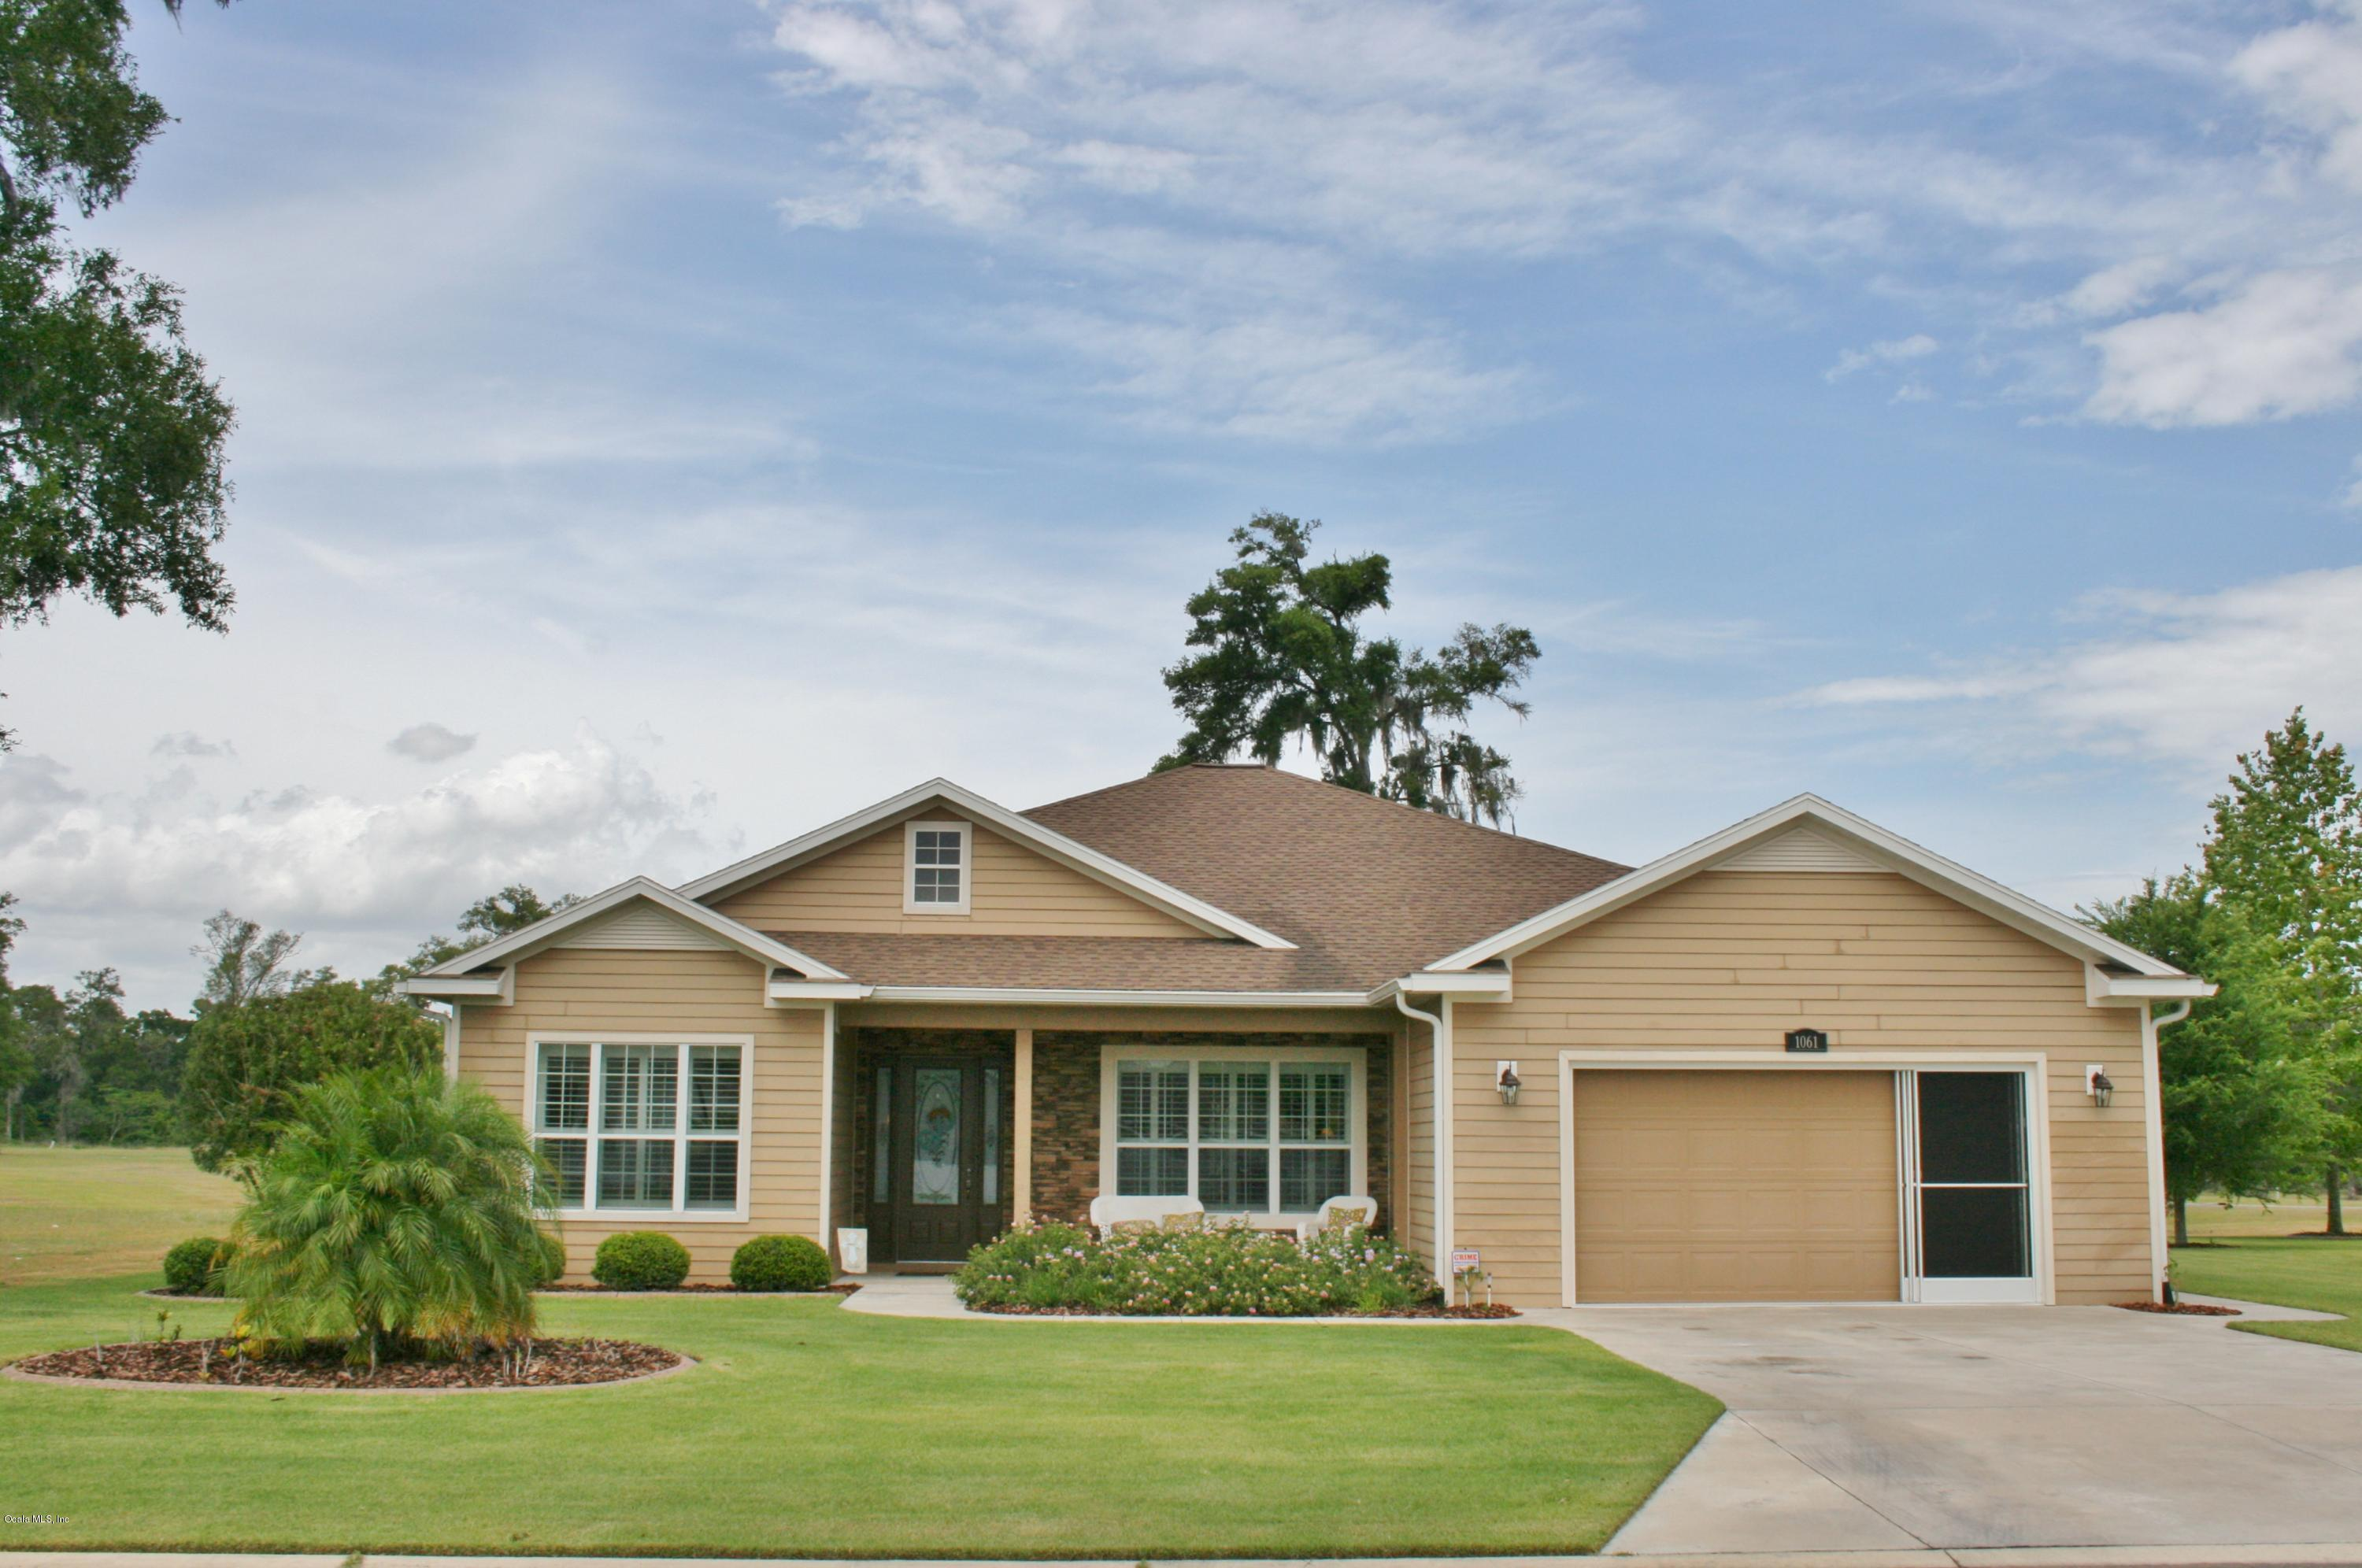 1061 NW 46TH PLACE, OCALA, FL 34475